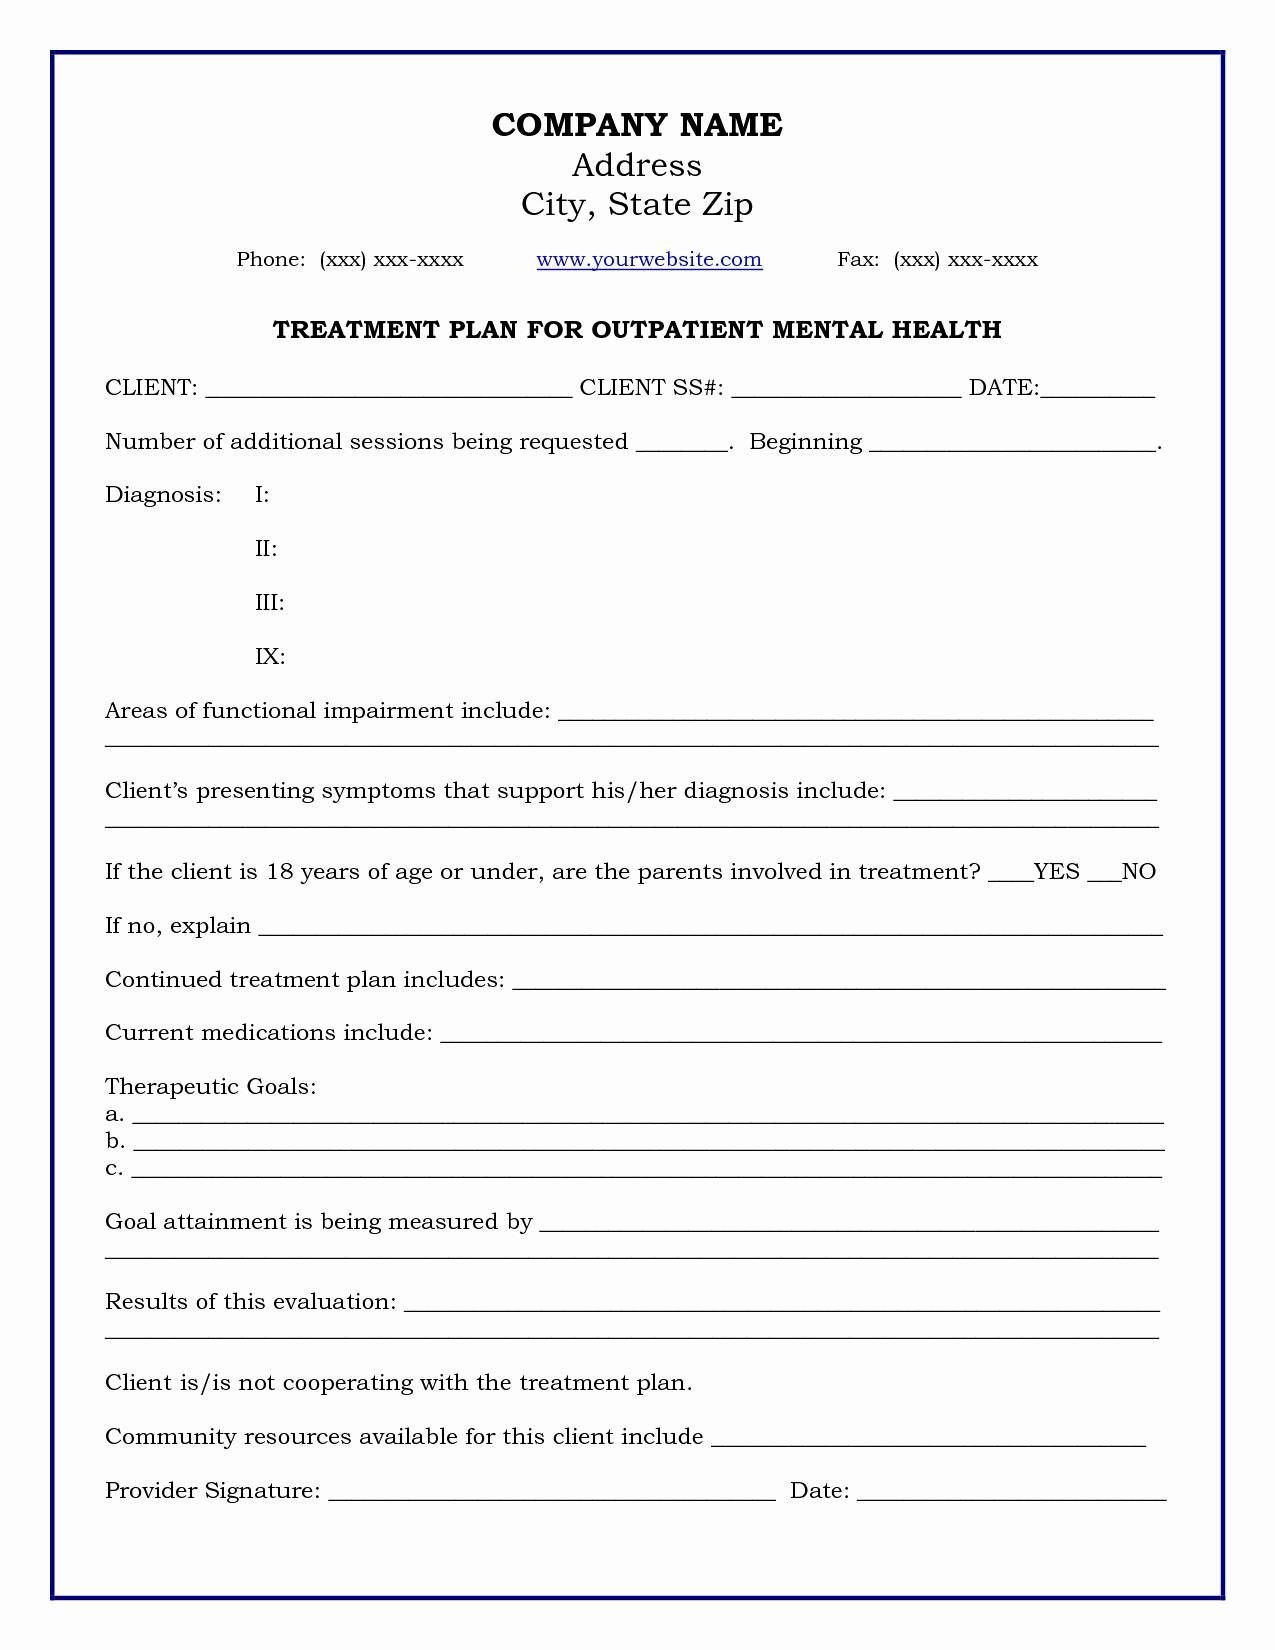 Counseling Treatment Plan Template Pdf Pin On Letter formats